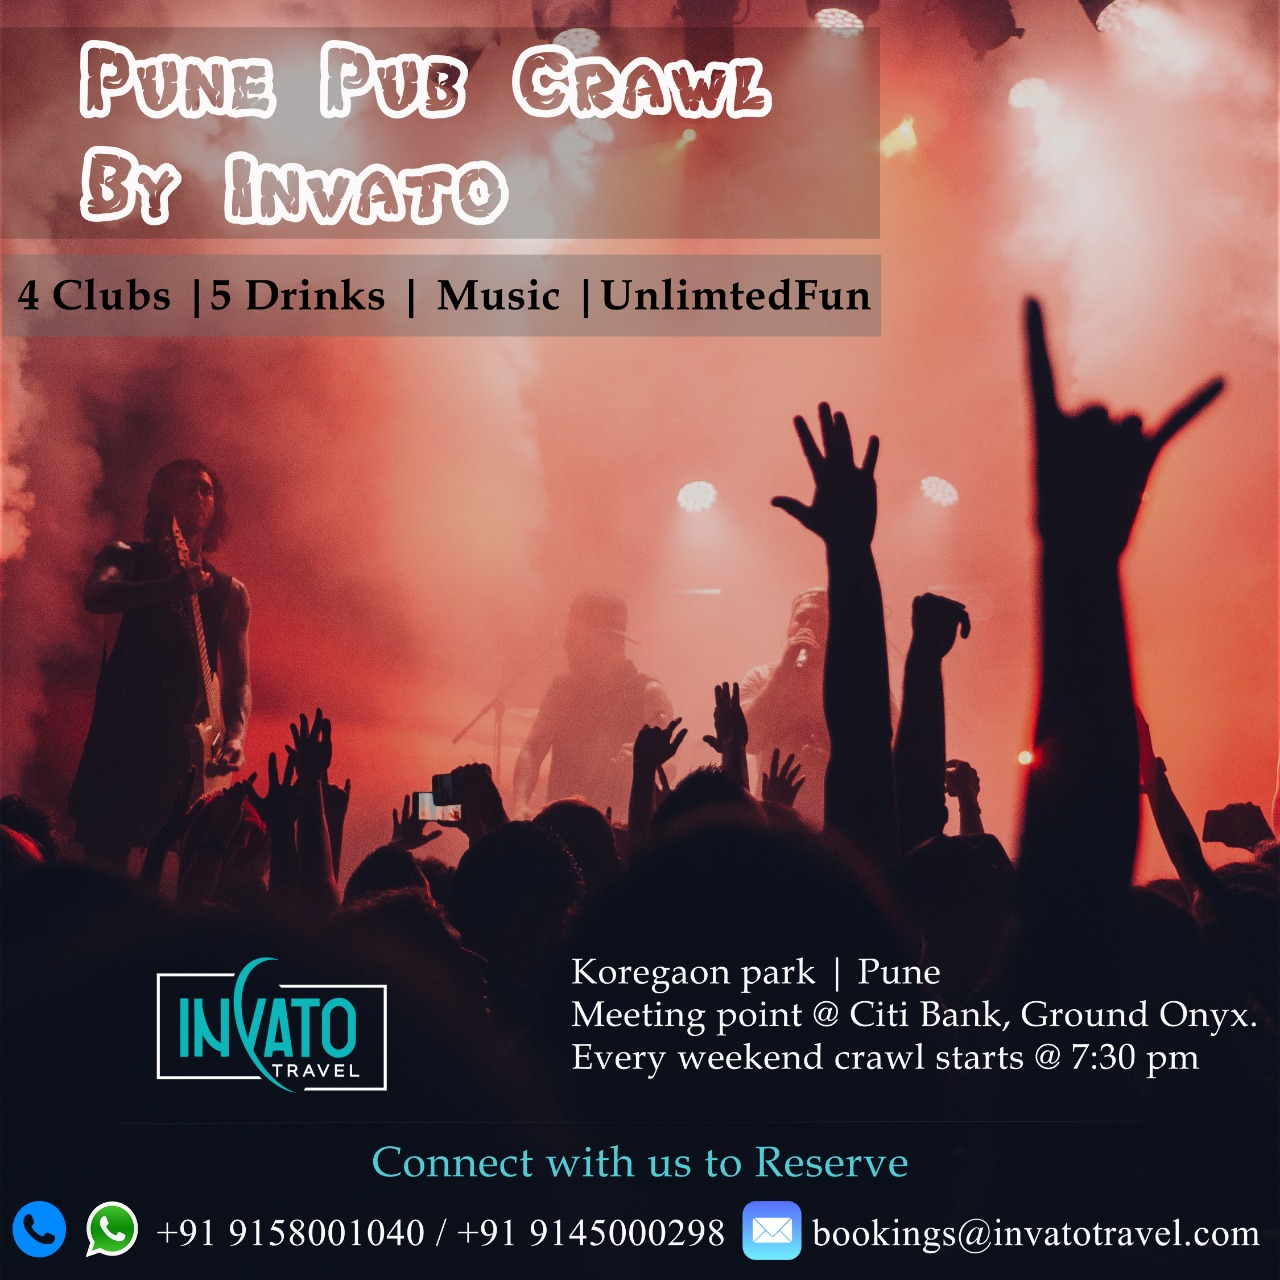 Pune Pub Crawl by Invato